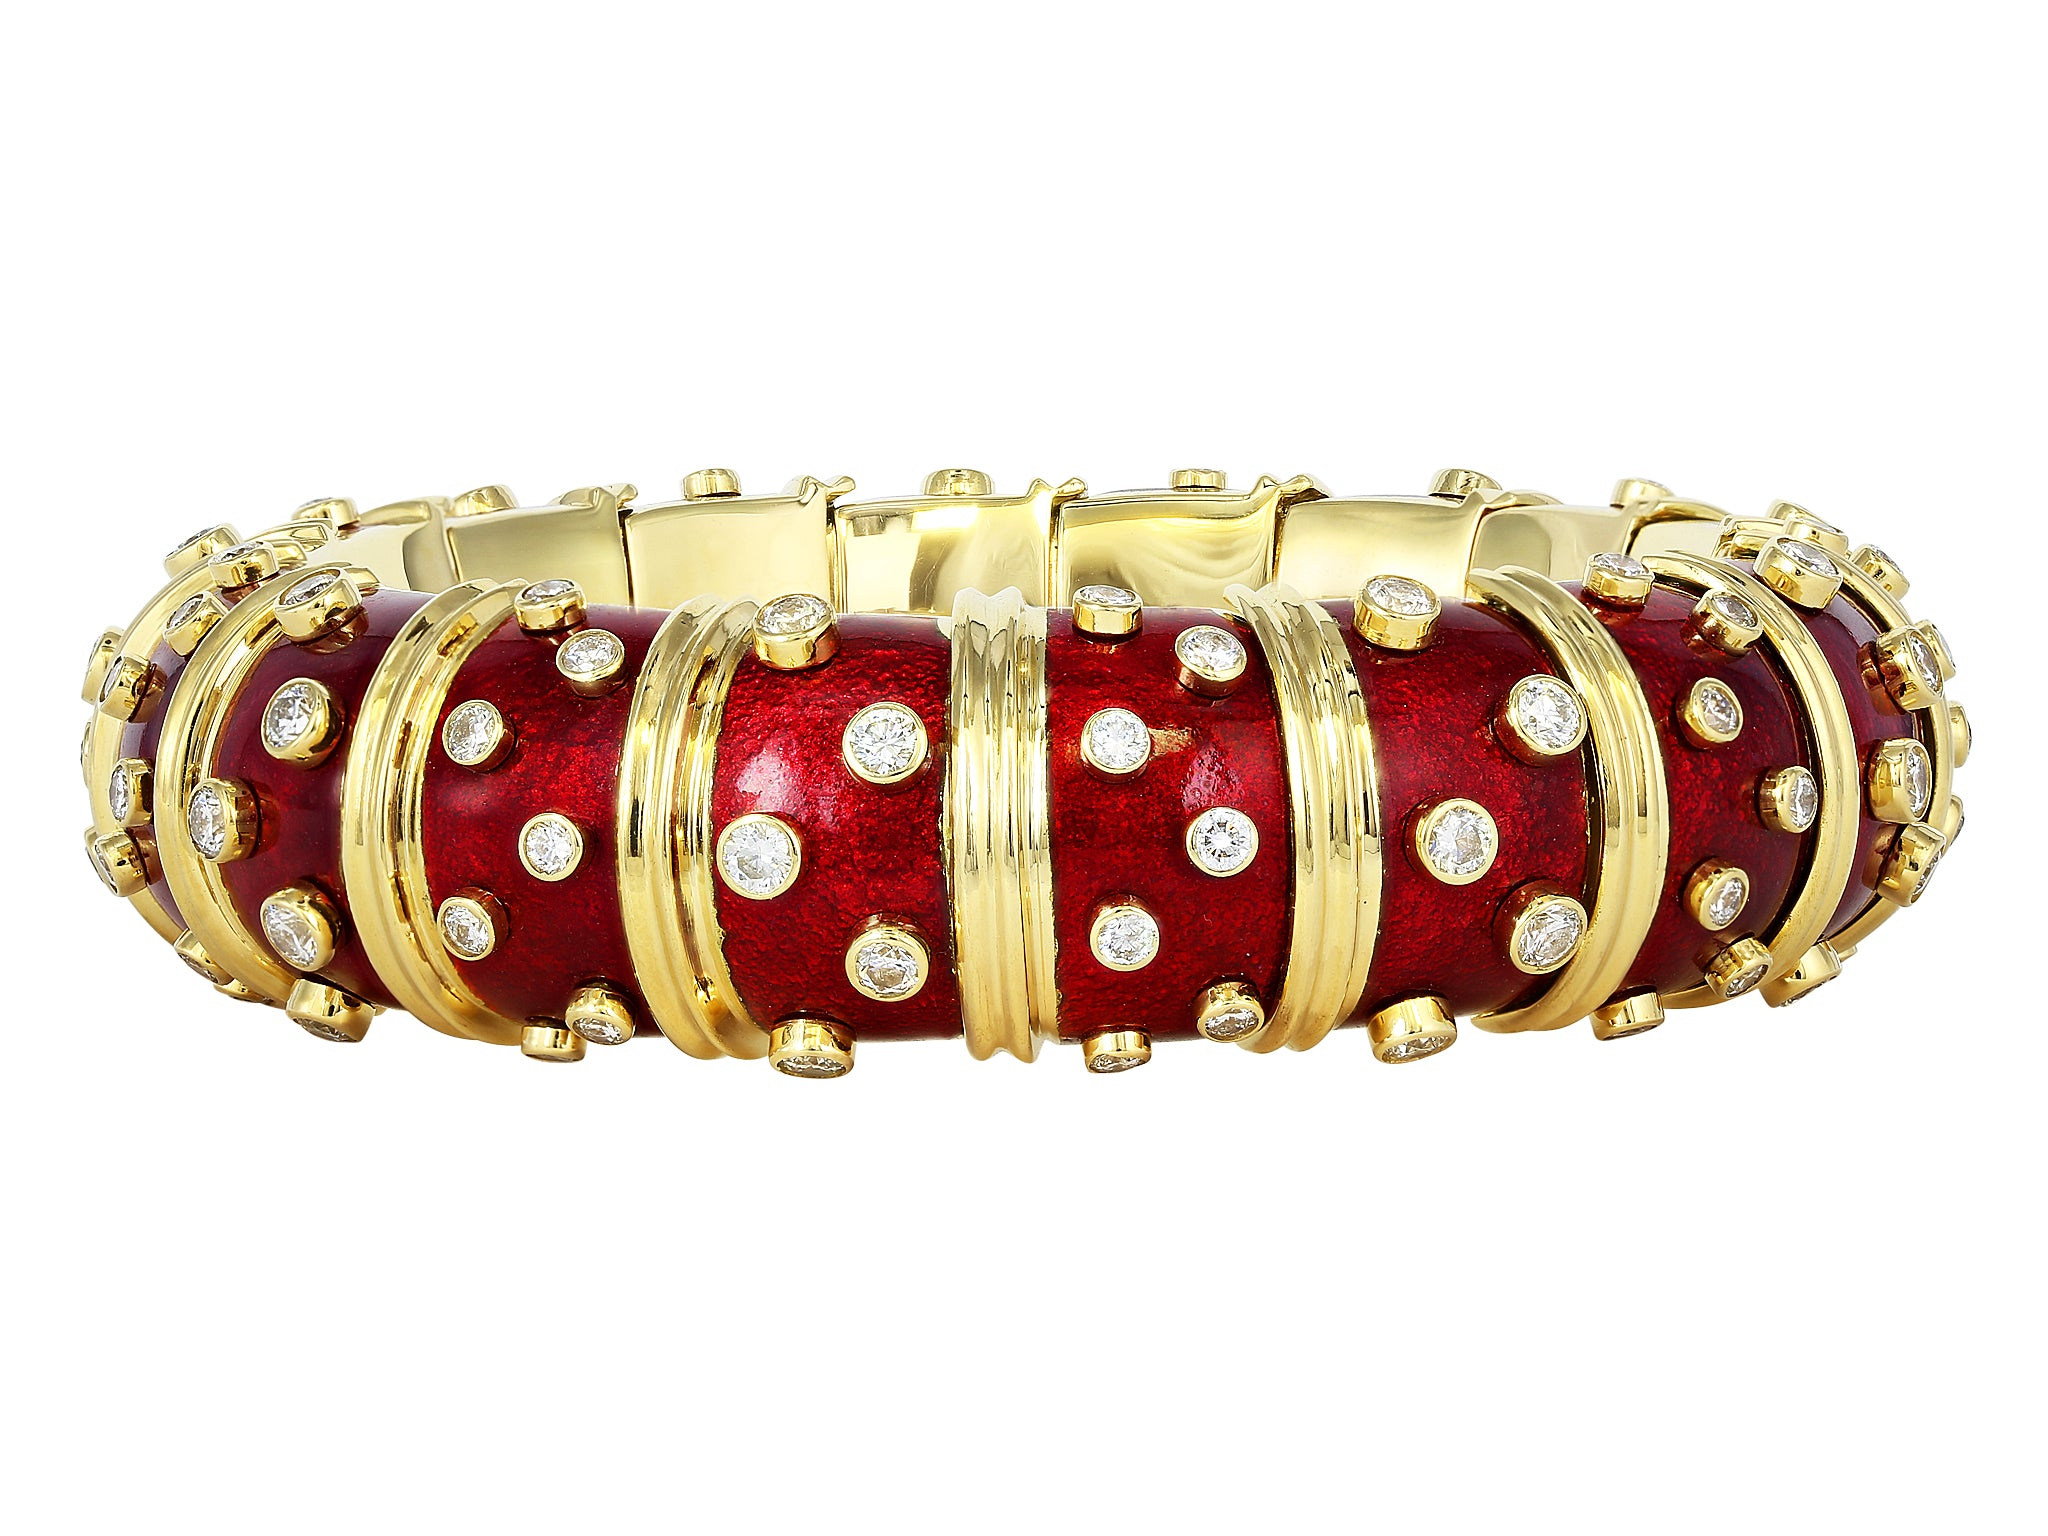 0c42707a7 Tiffany & Company Schlumberger Red Paillonne Diamond Bangle – David ...